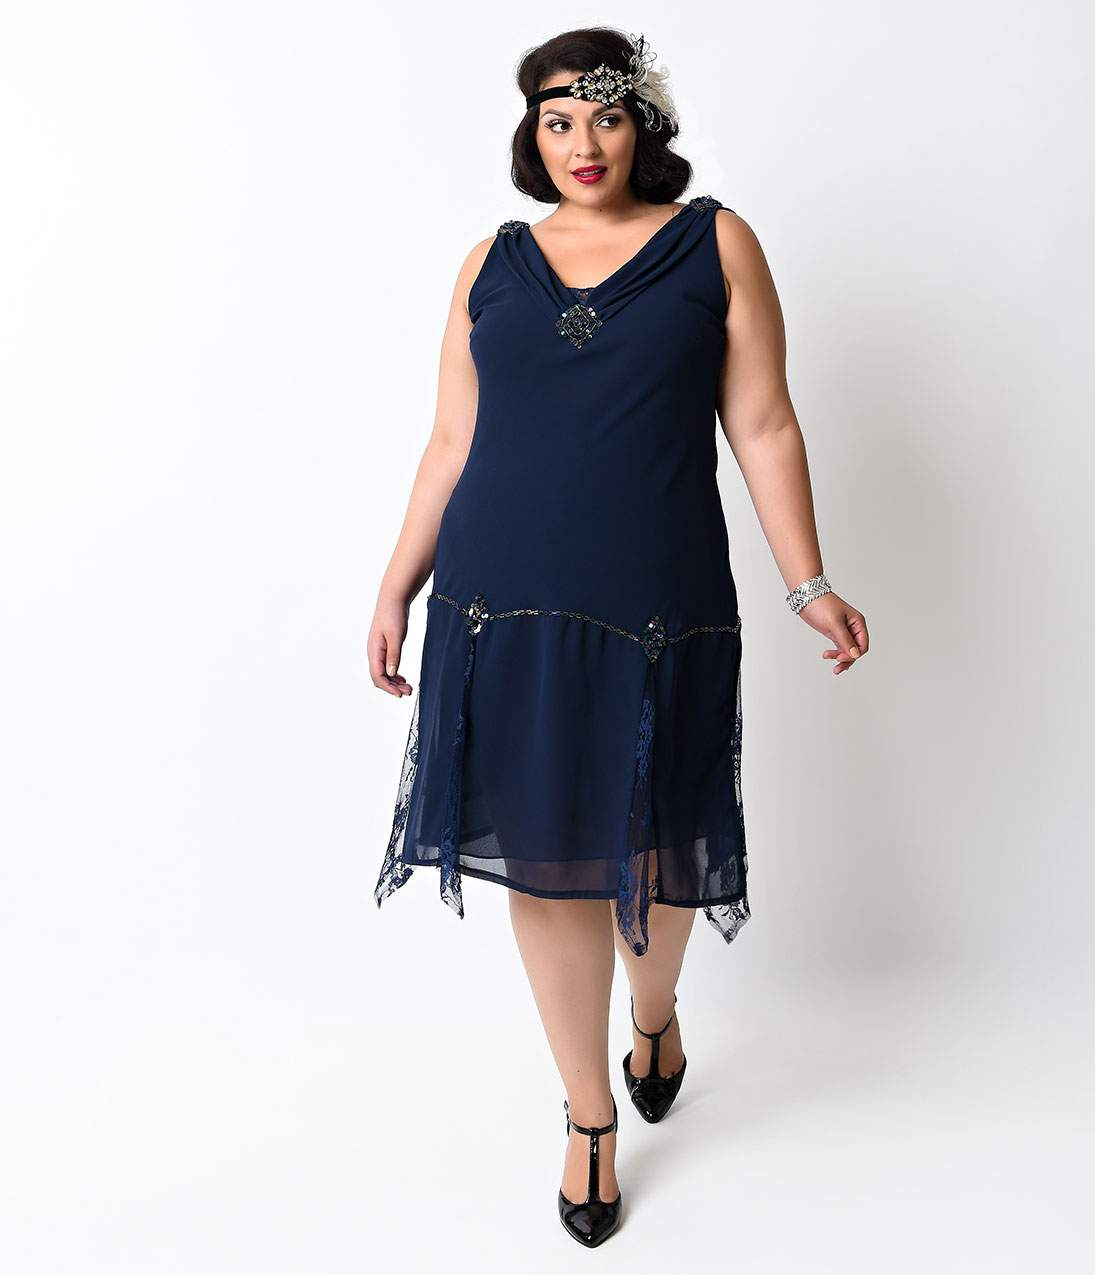 Downton Abbey Inspired Dresses Unique Vintage Plus Size Navy Hemingway Flapper Dress $48.00 AT vintagedancer.com